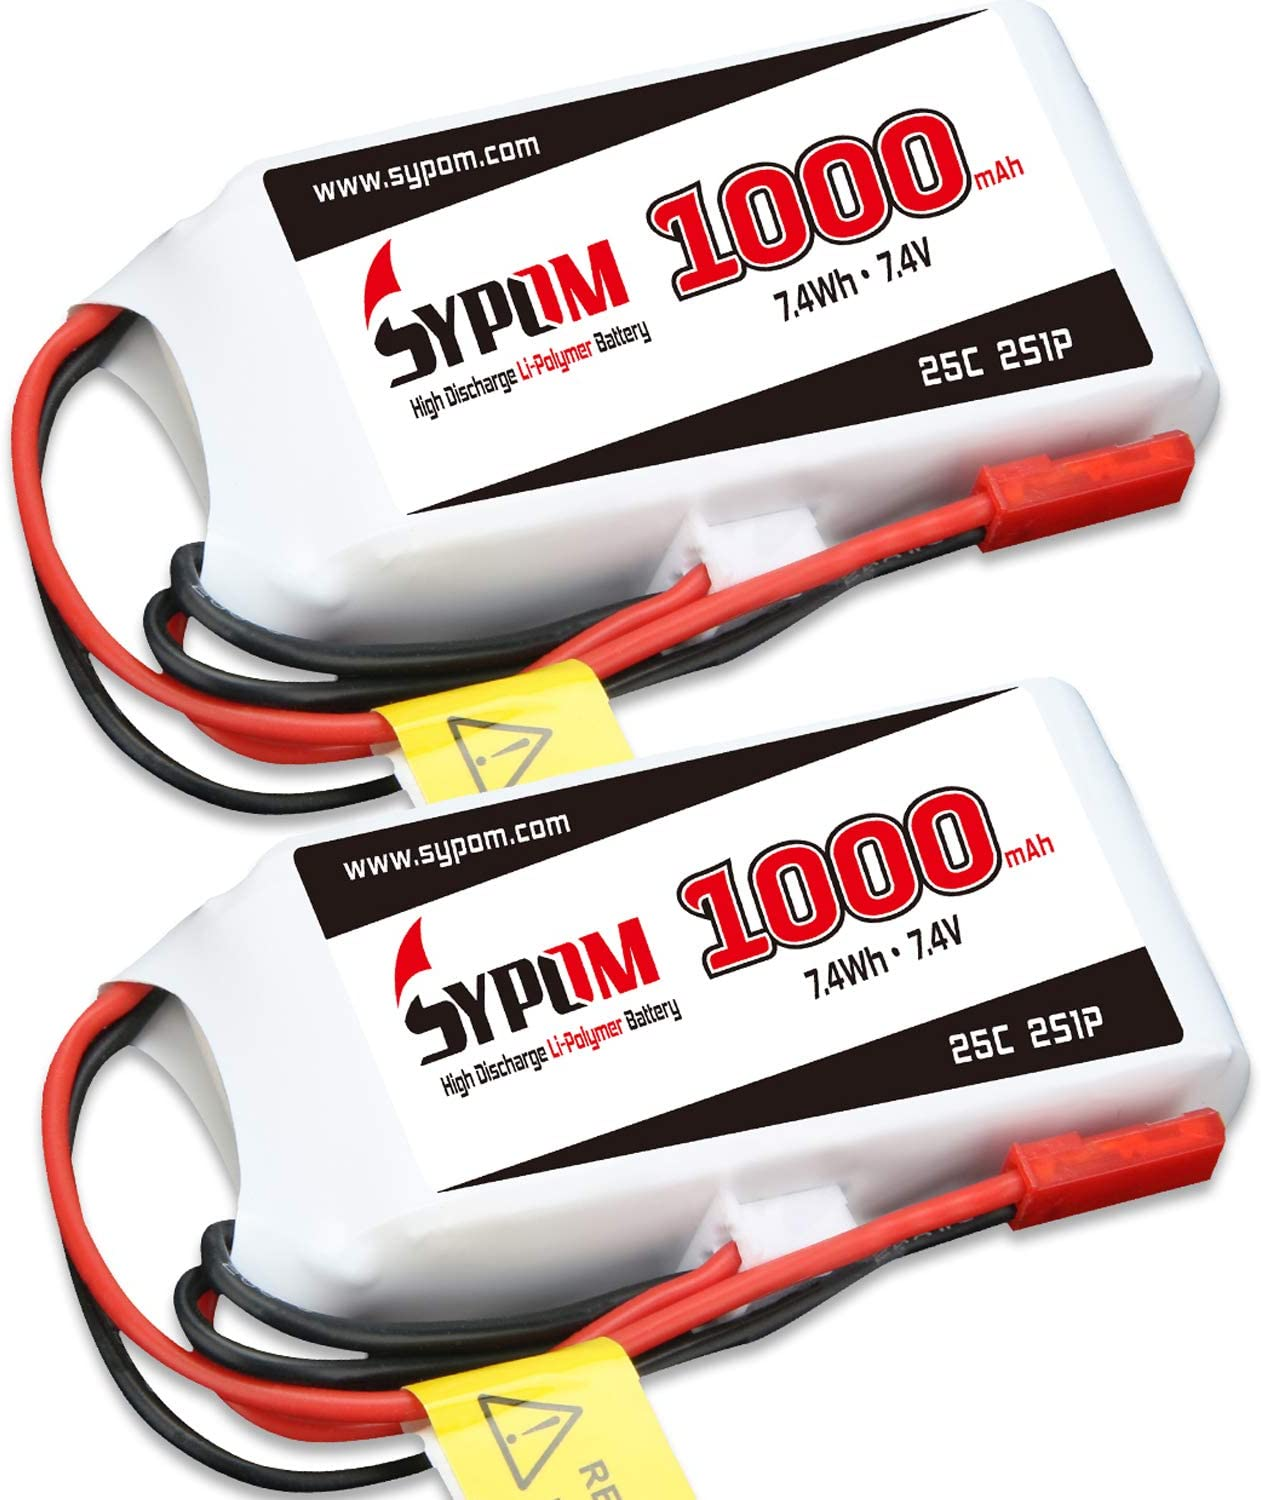 7.4V 1500mAh 25C 2S 1P Lipo Battery T Plug for RC Helicopter Drone car boat